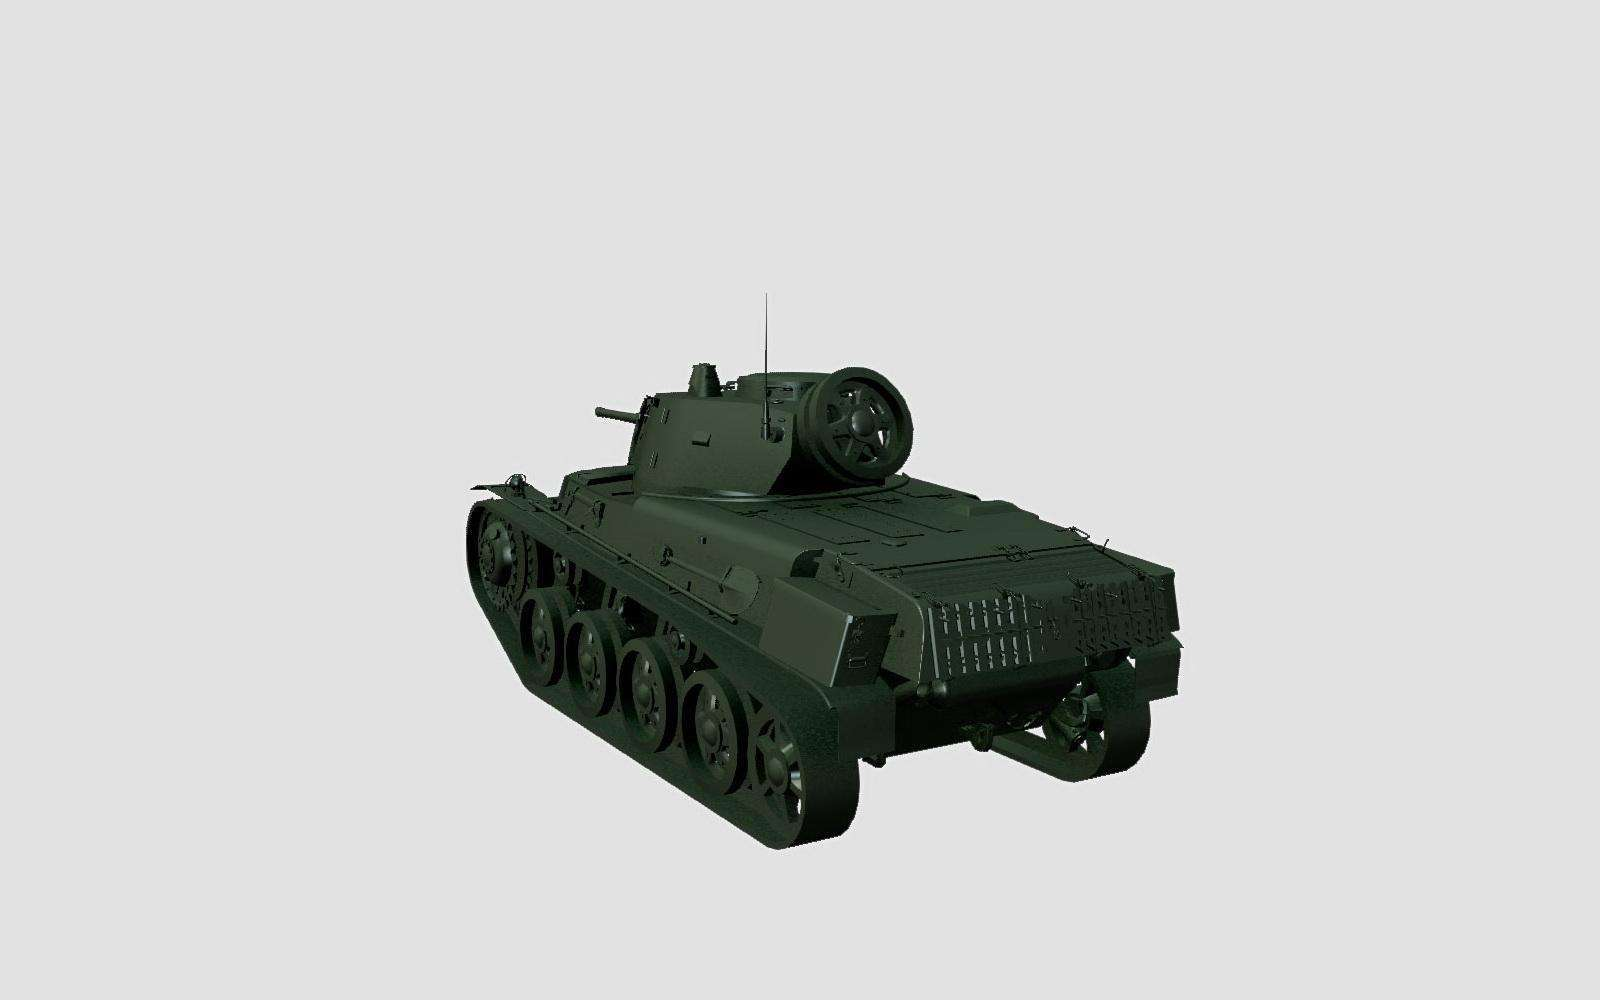 wot how to play strv 40